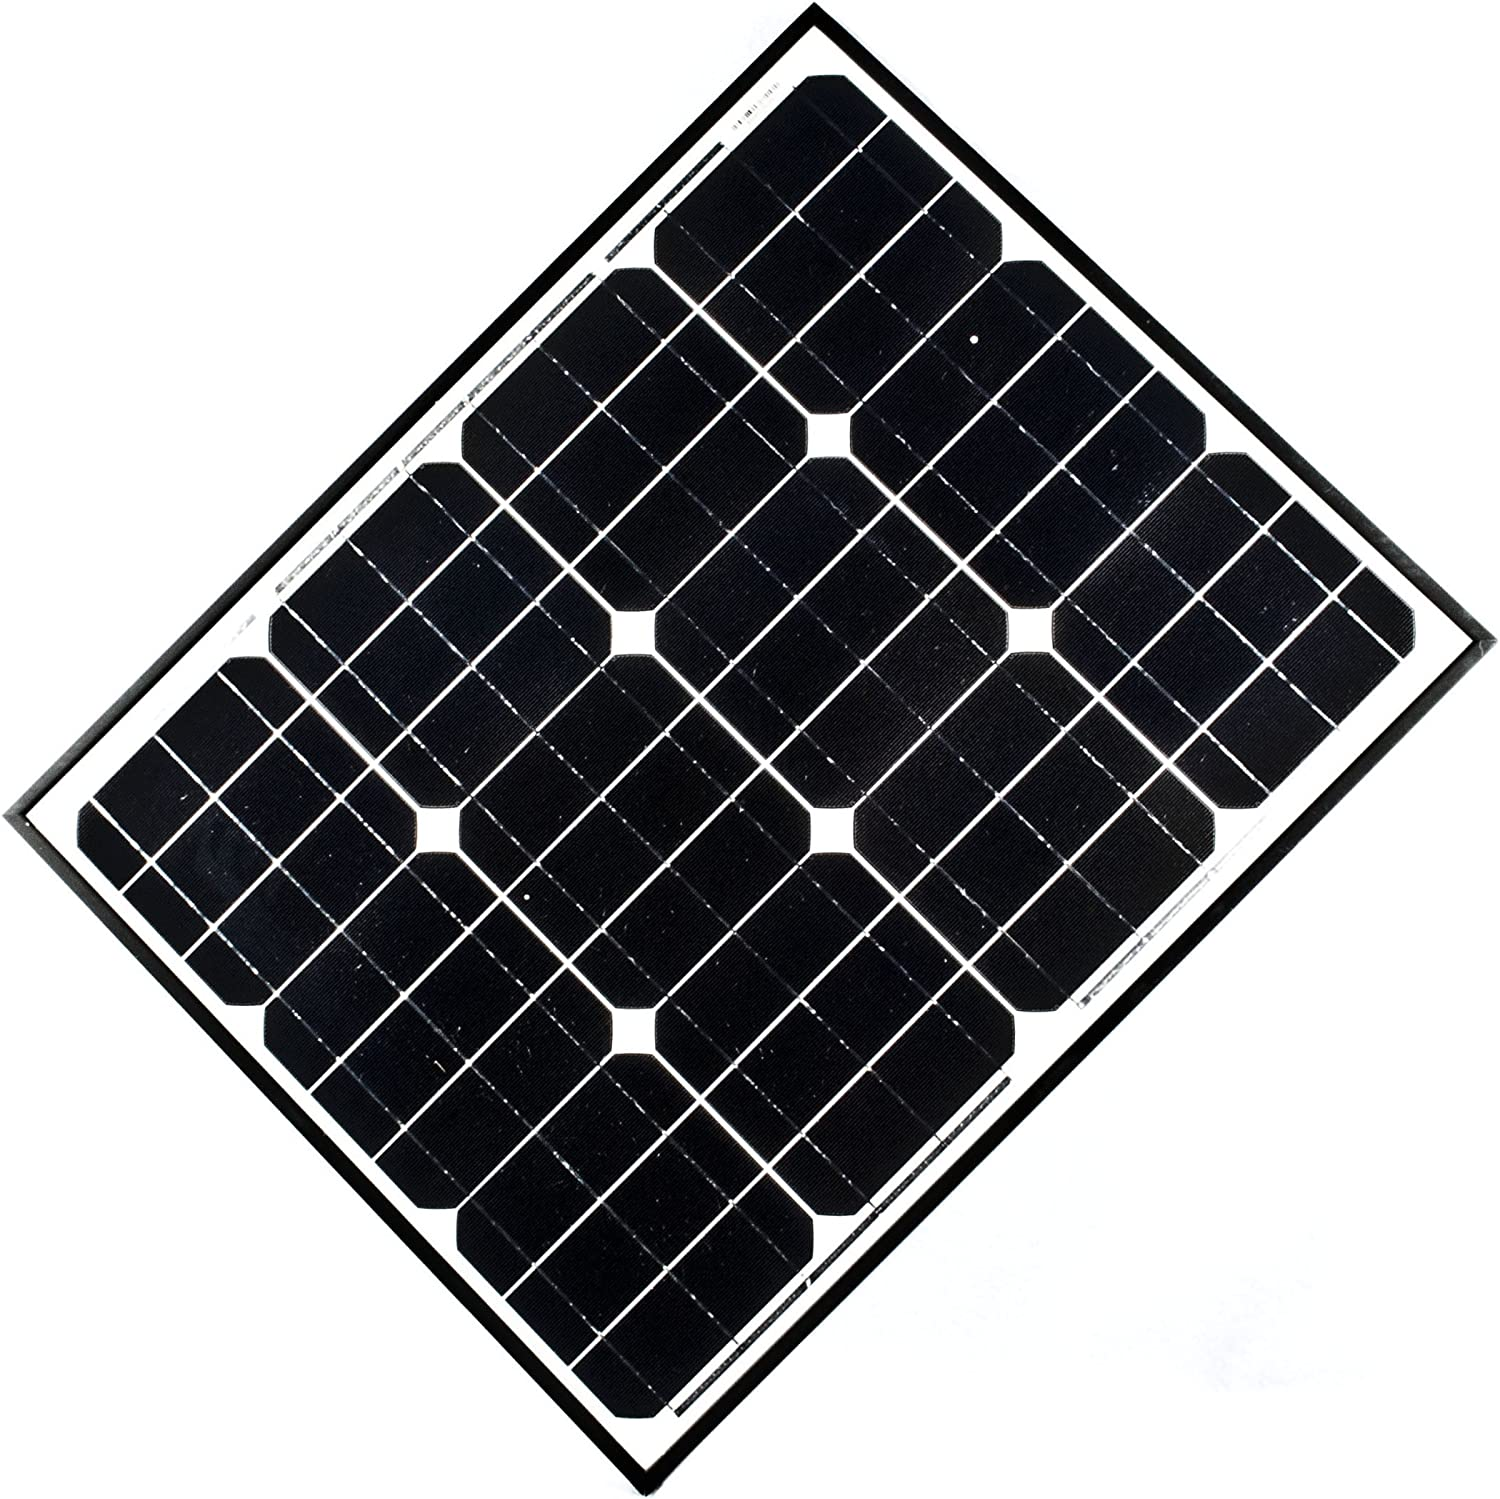 ALEKO SP50W12V 50 Watt 12 Volt Monocrystalline Solar Panel for Gate Opener Pool Garden Driveway